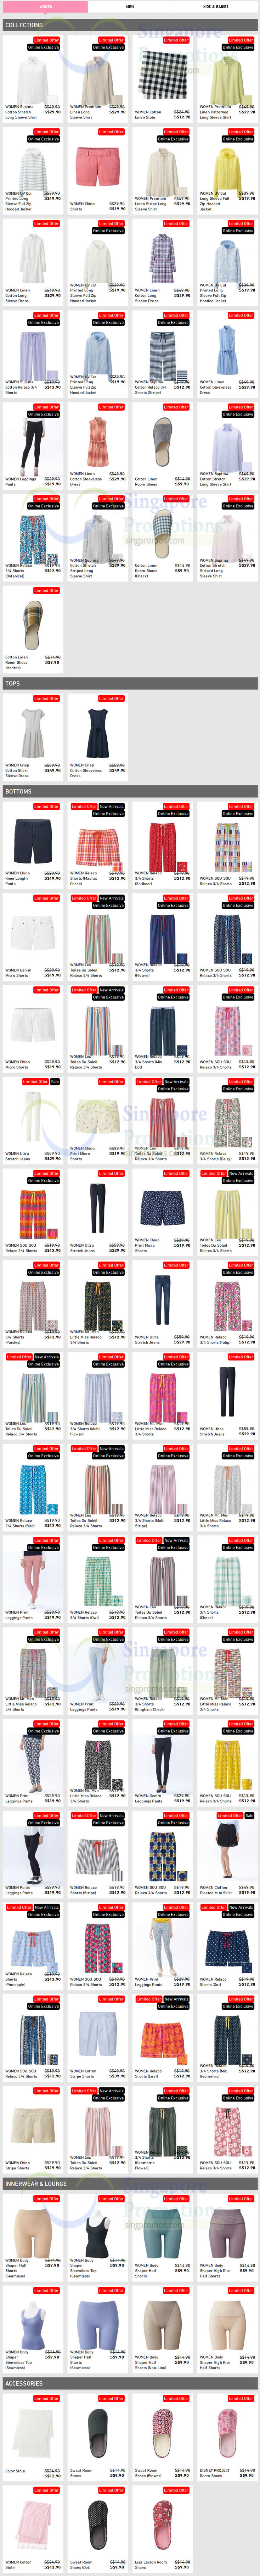 (Est till 21 May) Womens Limited Offers